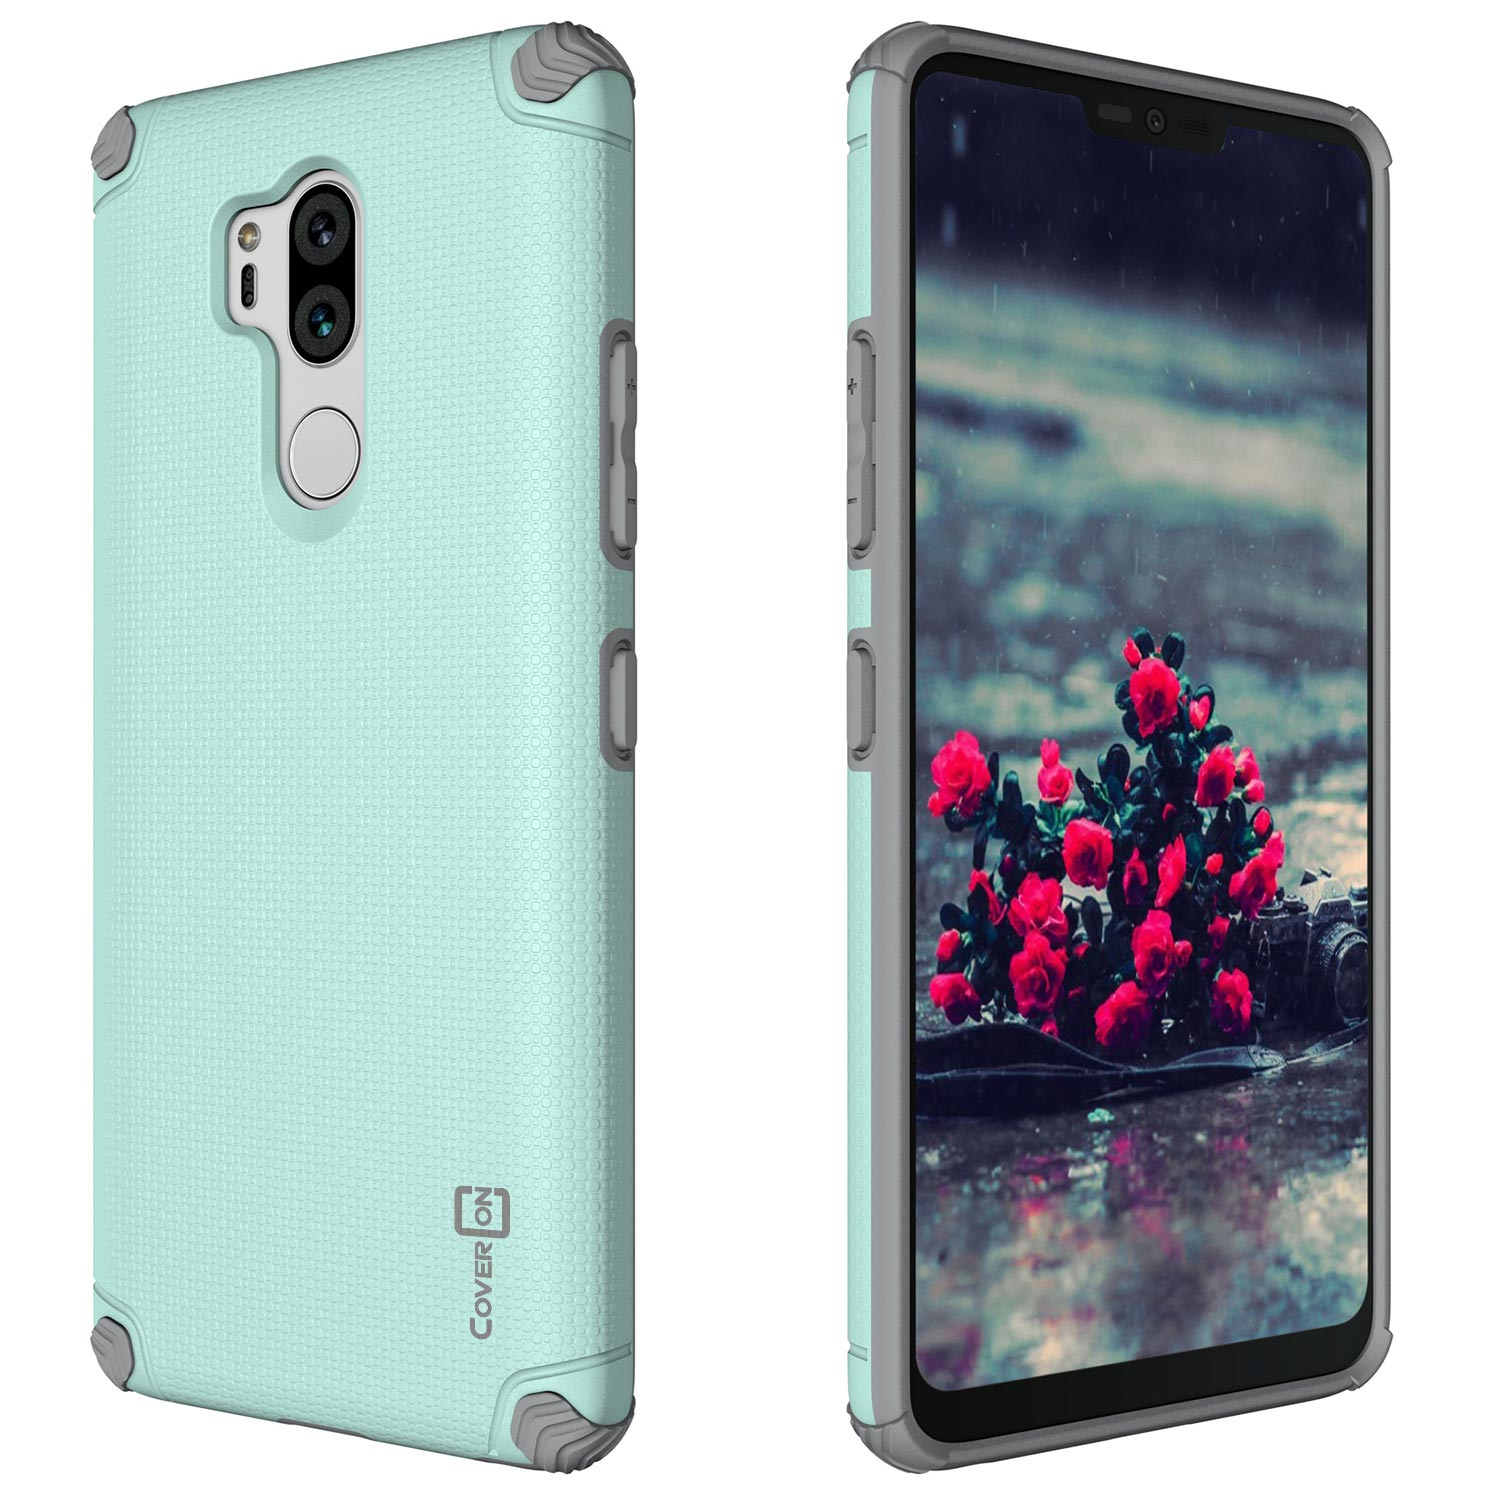 LG G7 case Hard Shell with Card Holder /& Magnetic Car Mount Slim Heavy Duty Bumper Protective Cover